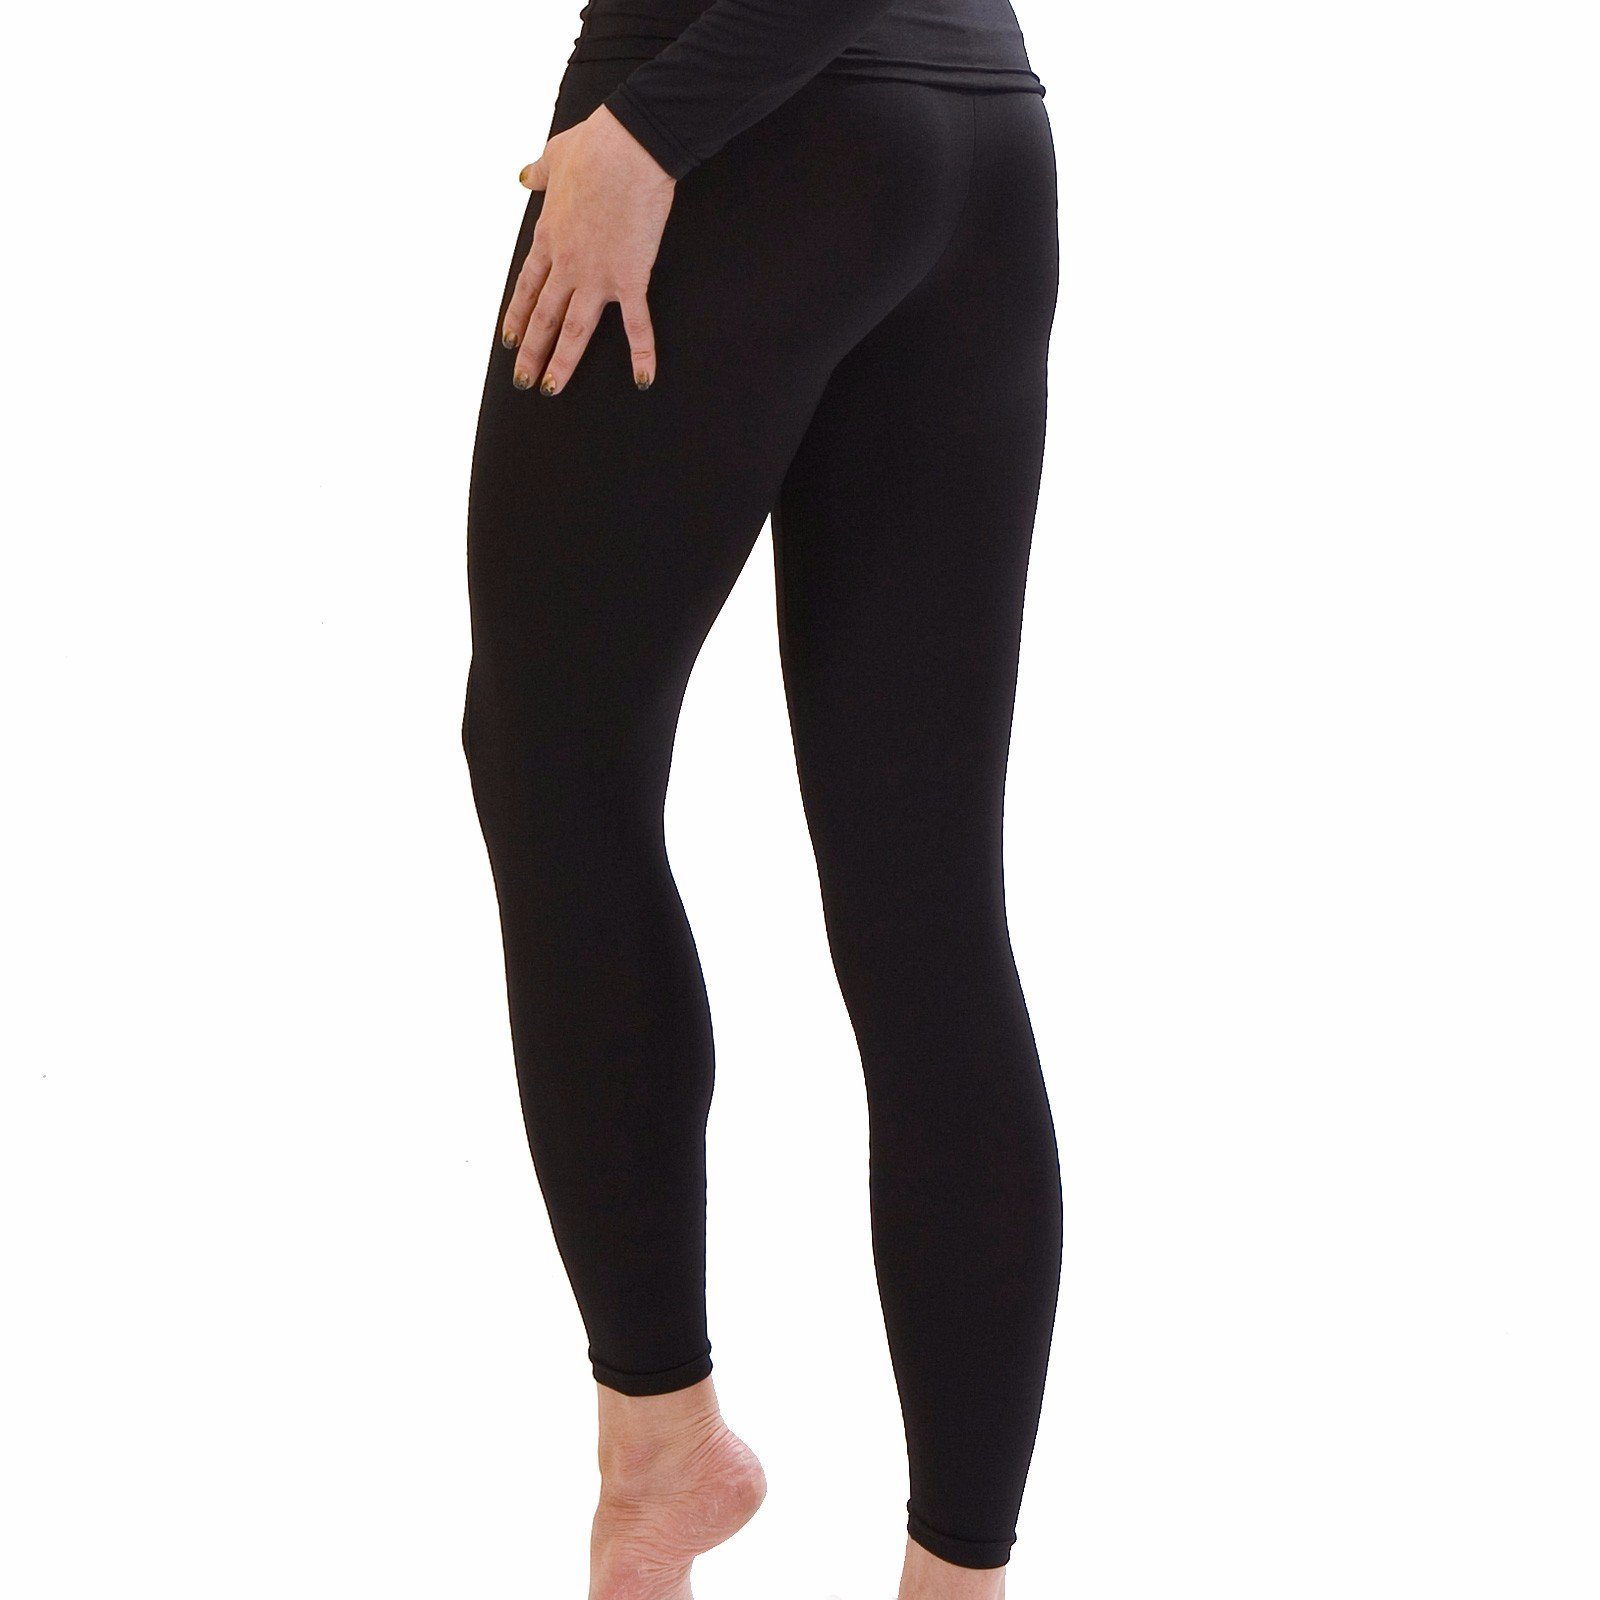 Women Thermal Underwear Pants Leggings Tights Base Layer Compression Bottoms NPW S by Henri maurice (Image #4)